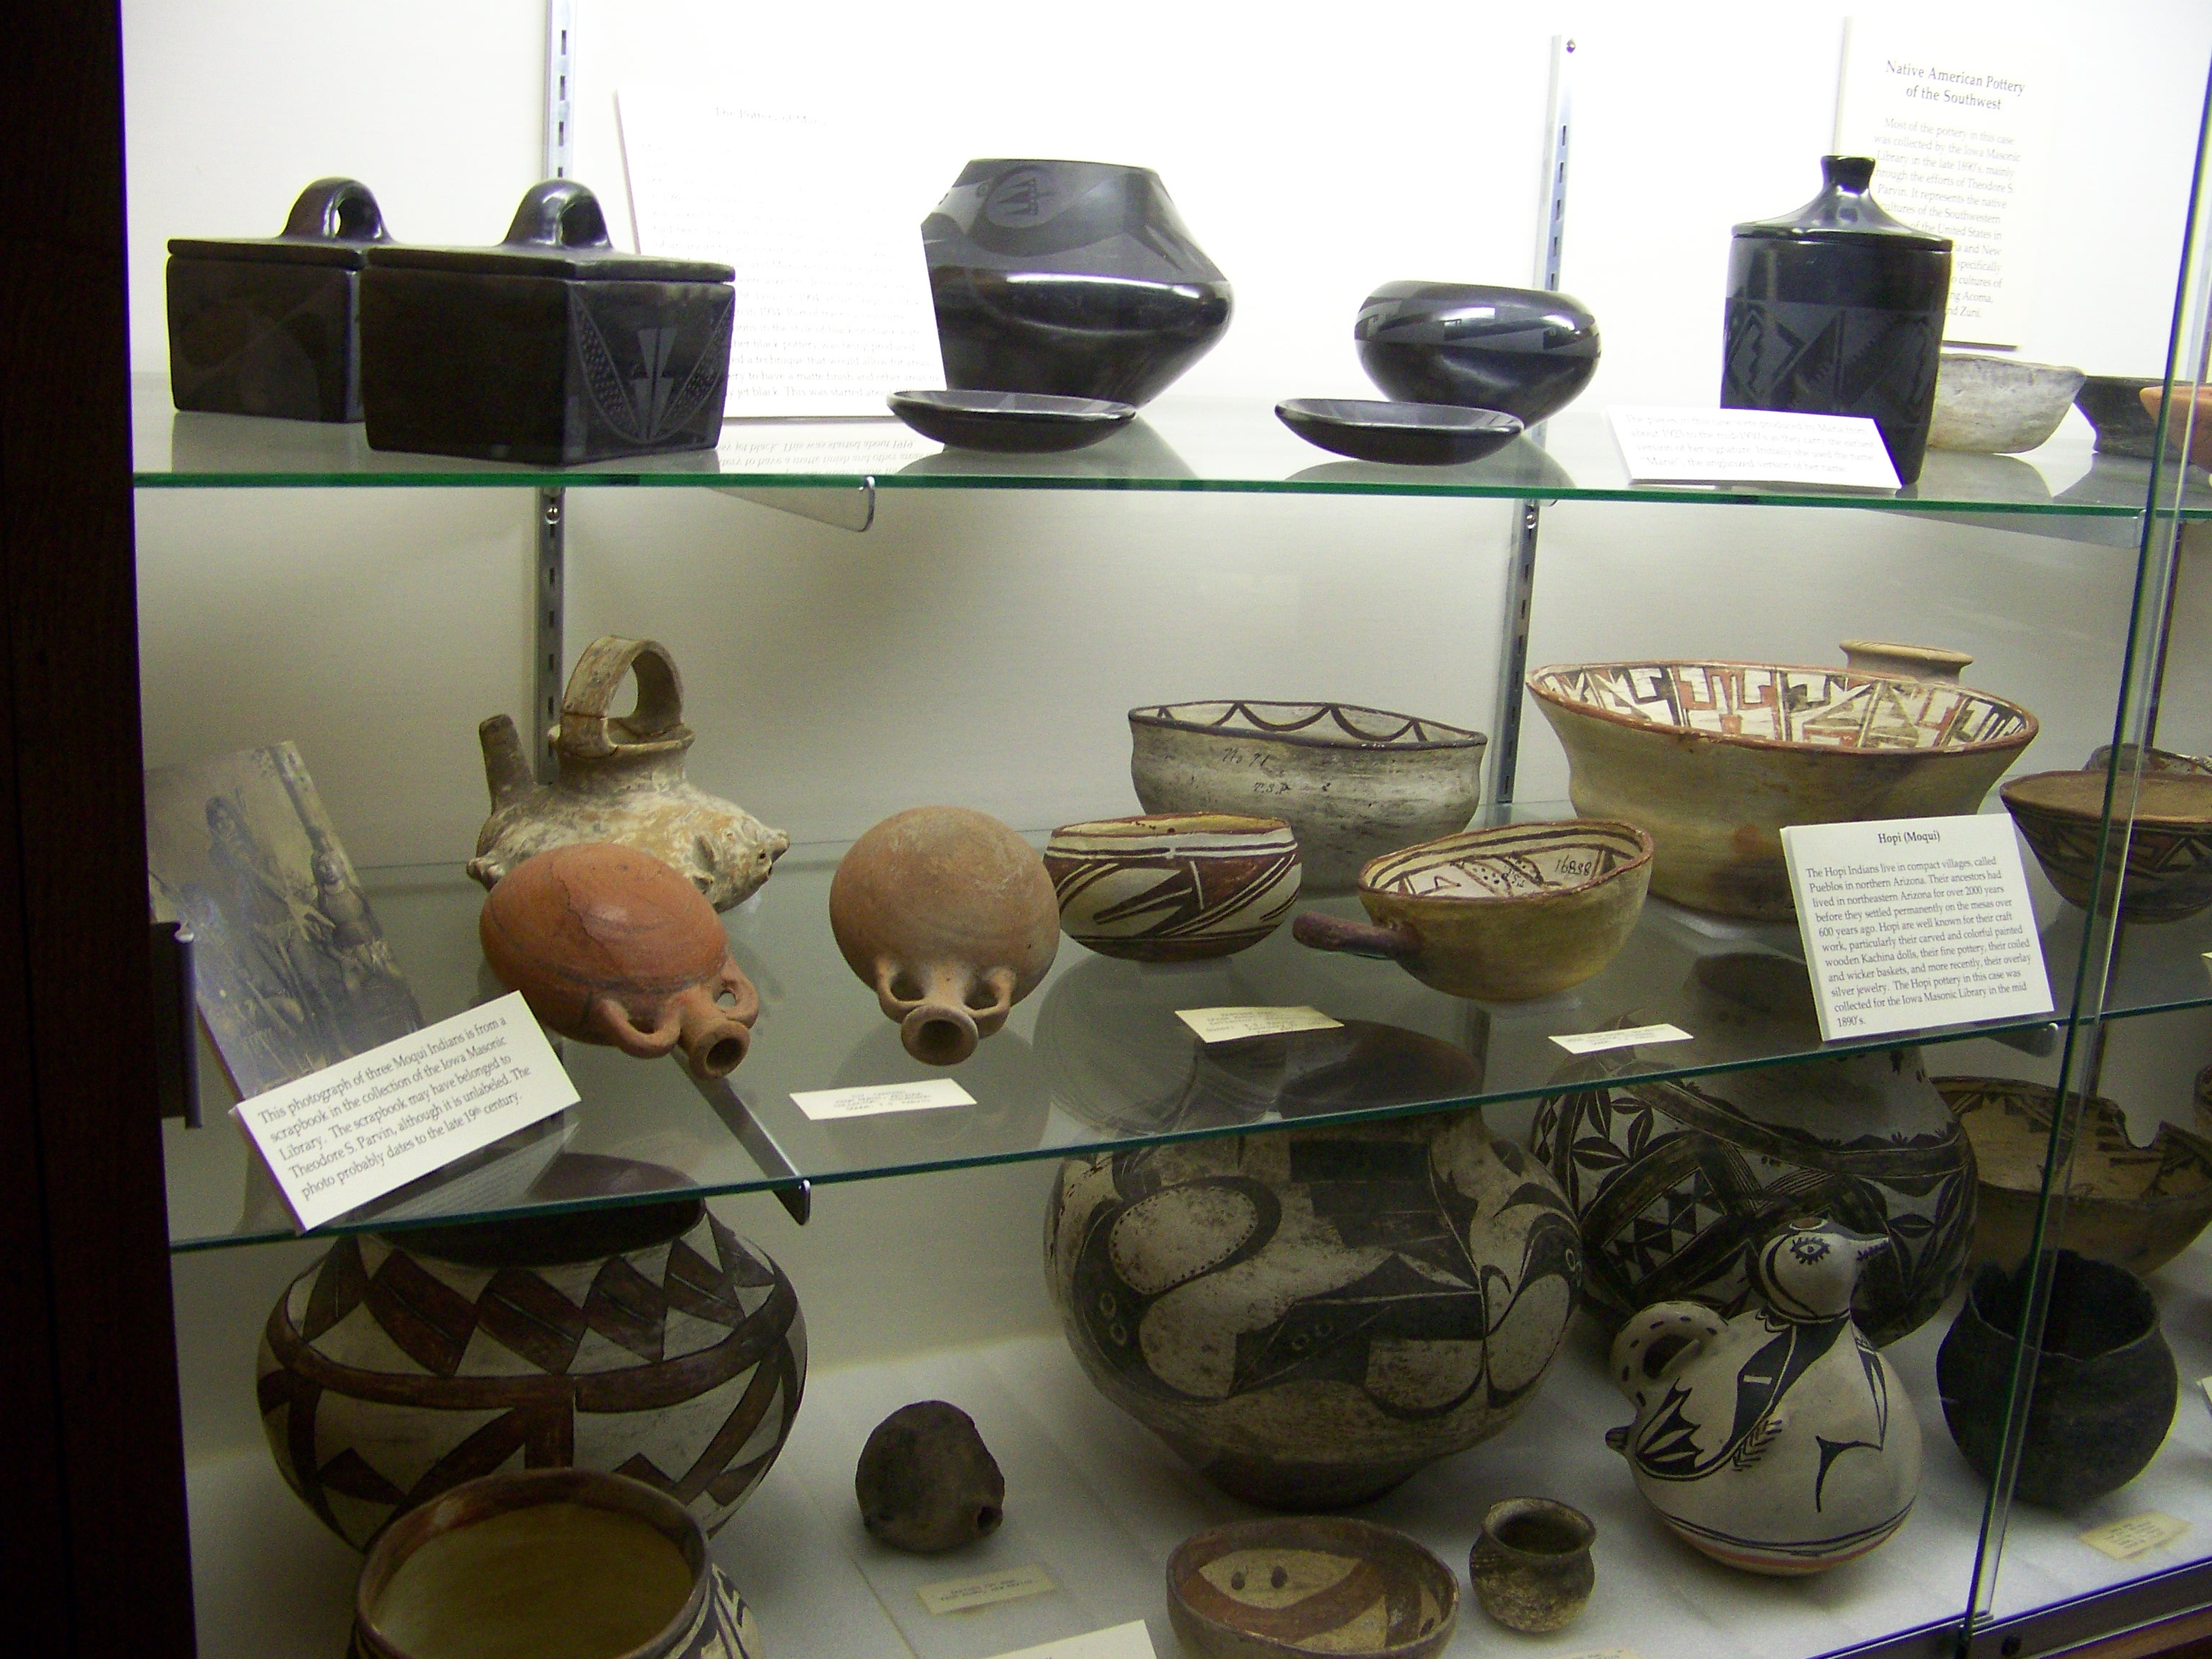 The pottery in this exhibit  specifically represents the Pueblo cultures of this region, including Acoma, Hopi (Moqui), and Zuni.